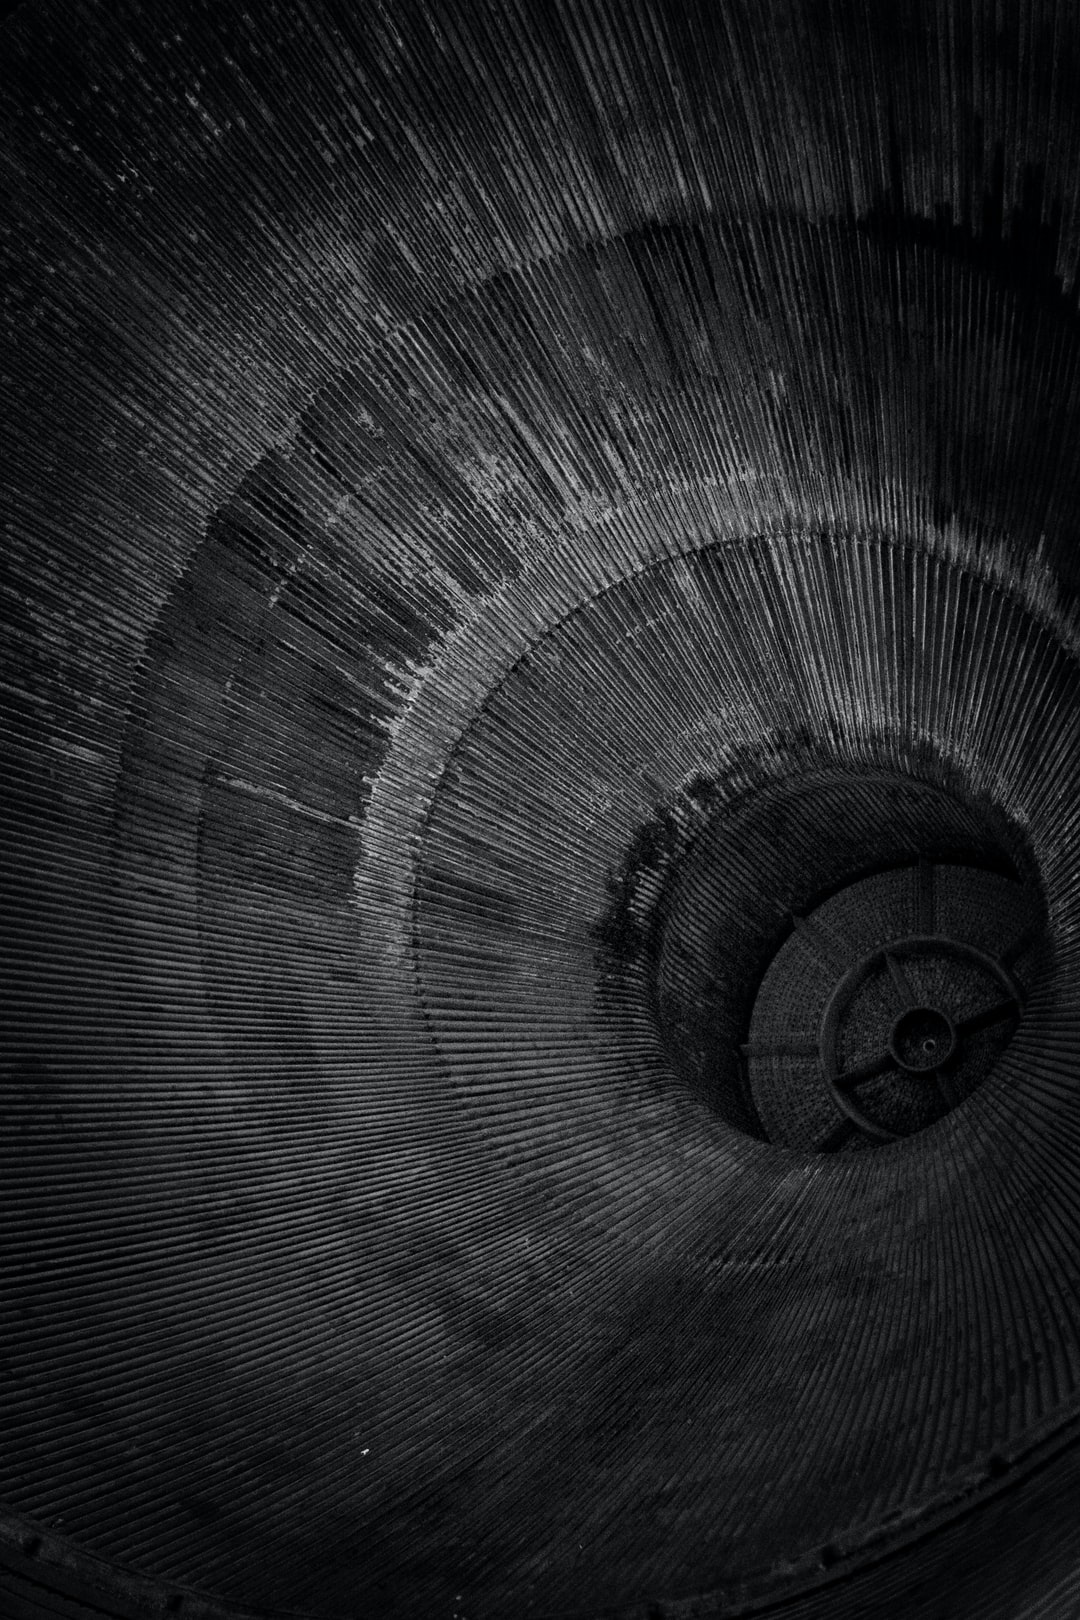 On a trip to Houston, TX, we cannot miss the NASA space center! This was taken in the rocket park exhibit that had the real Saturn V lunar apollo rocket on display, and this was a picture of one of the huge exhaust nozzles of the rocket's engines - the most powerful in history.